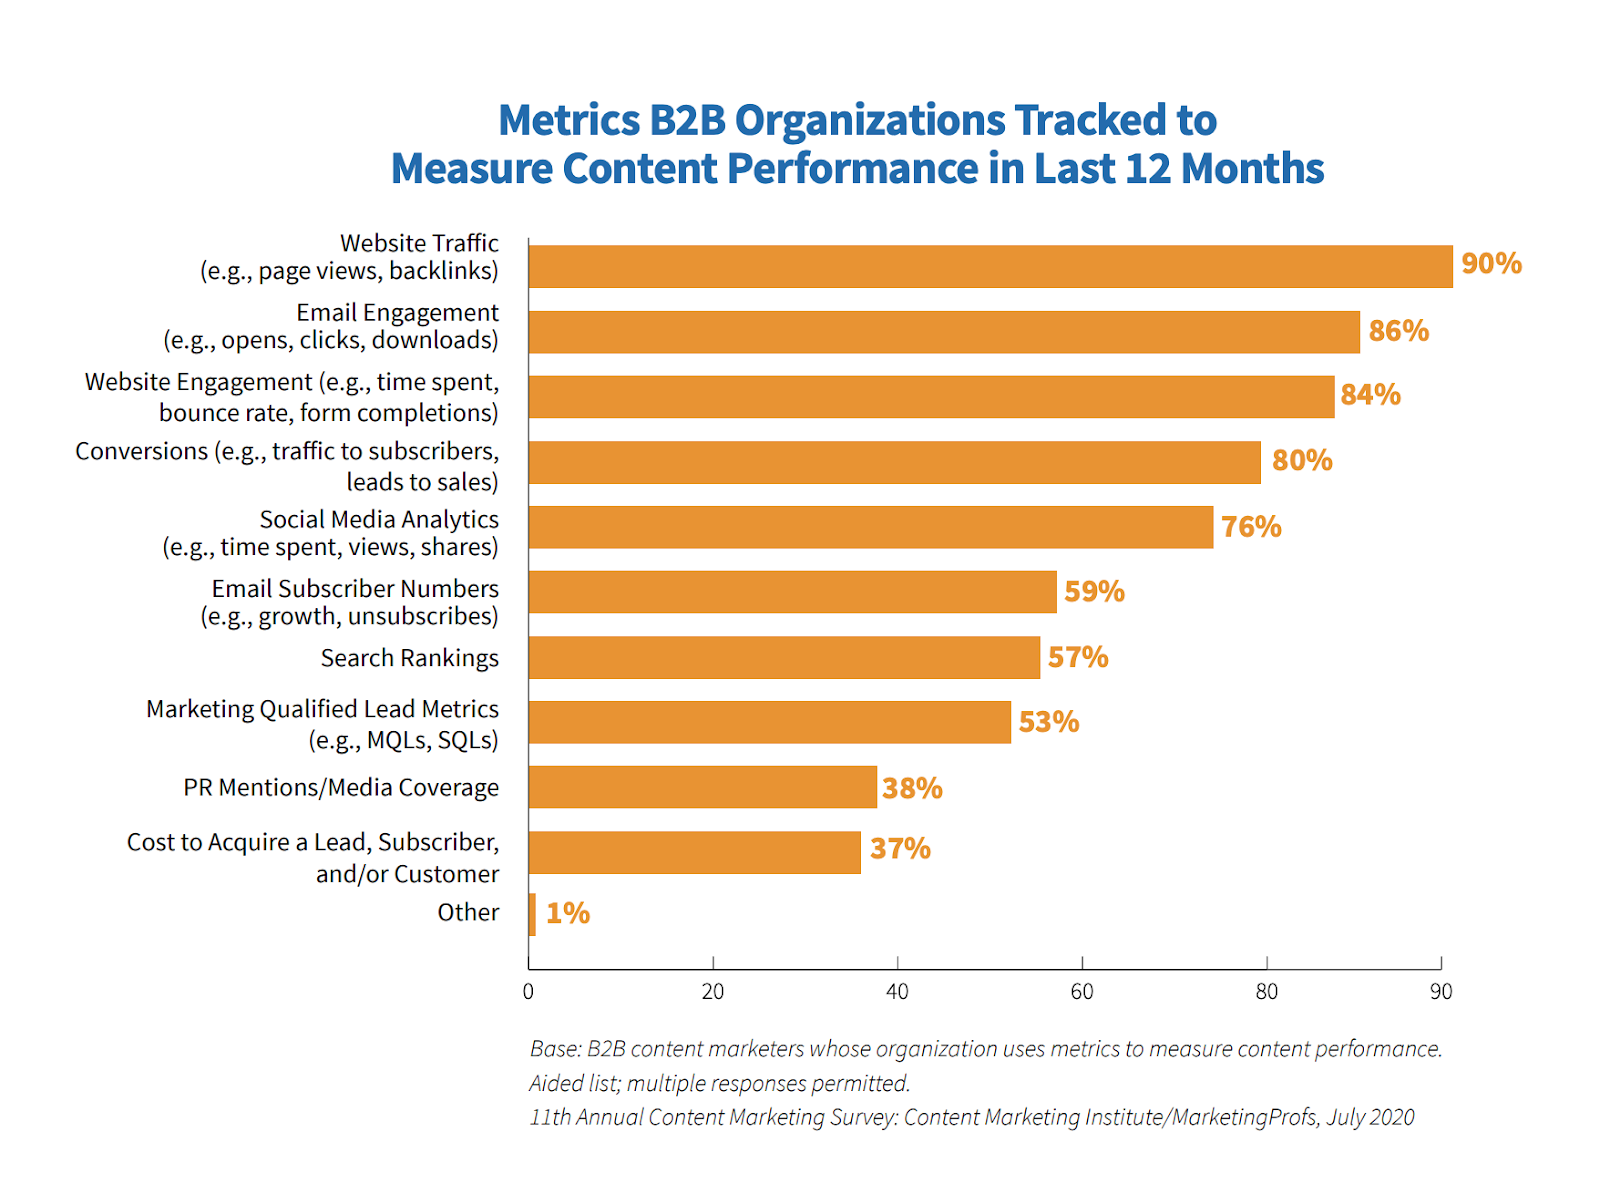 Metrics B2B organizations tracked to measure content performance in last 12 months